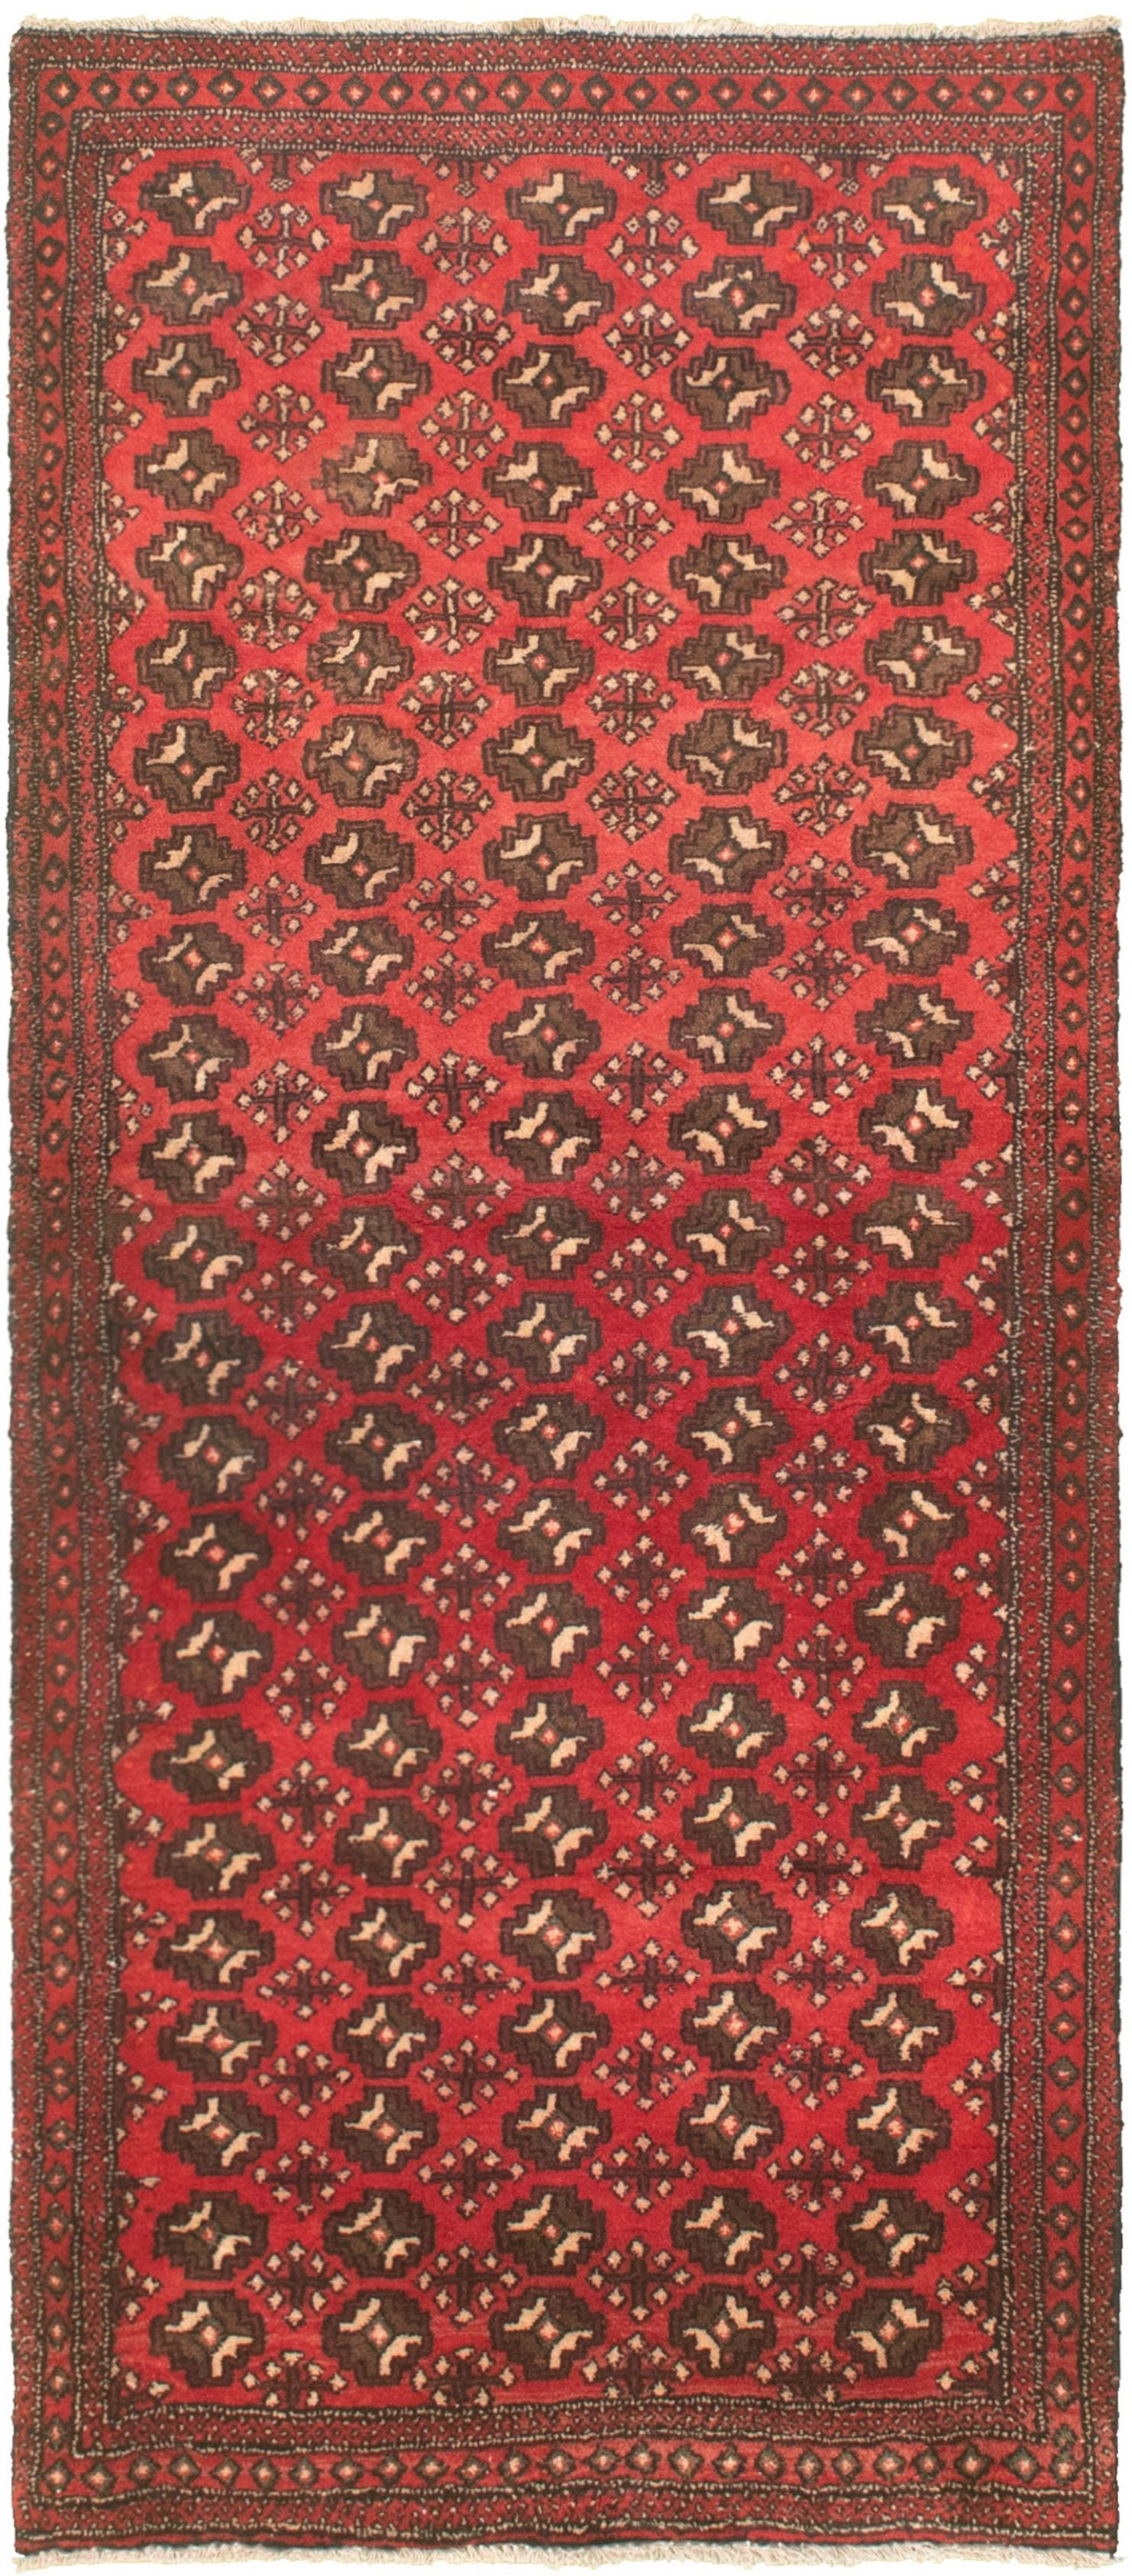 """Hand-knotted Authentic Turkish Red Wool Rug 2'6"""" x 6'7"""" Size: 2'6"""" x 6'7"""""""